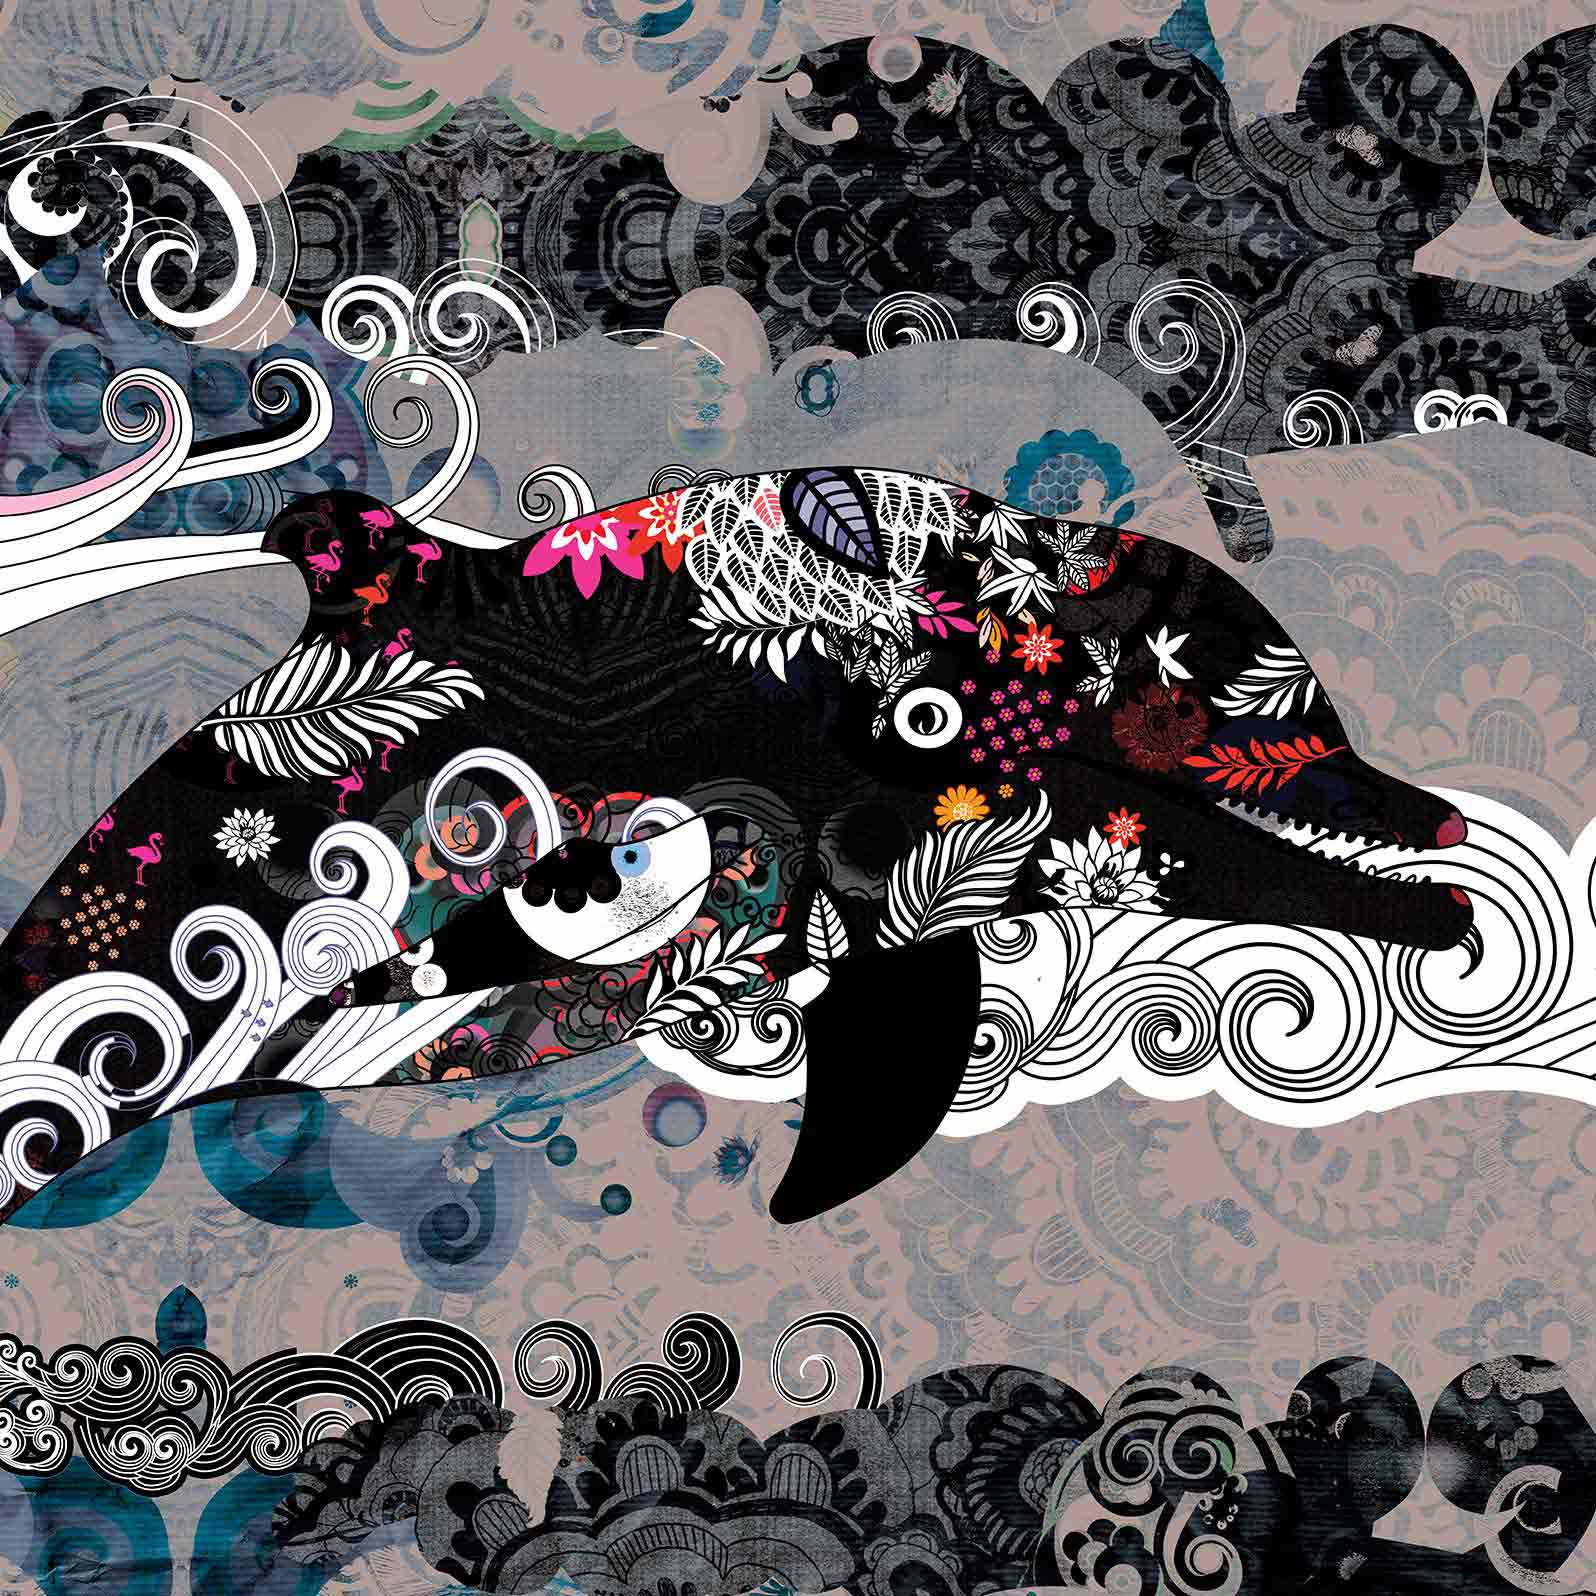 Anca Stefanescu | Flying Dolphin Digital Art, Limited Edition Print On Canvas